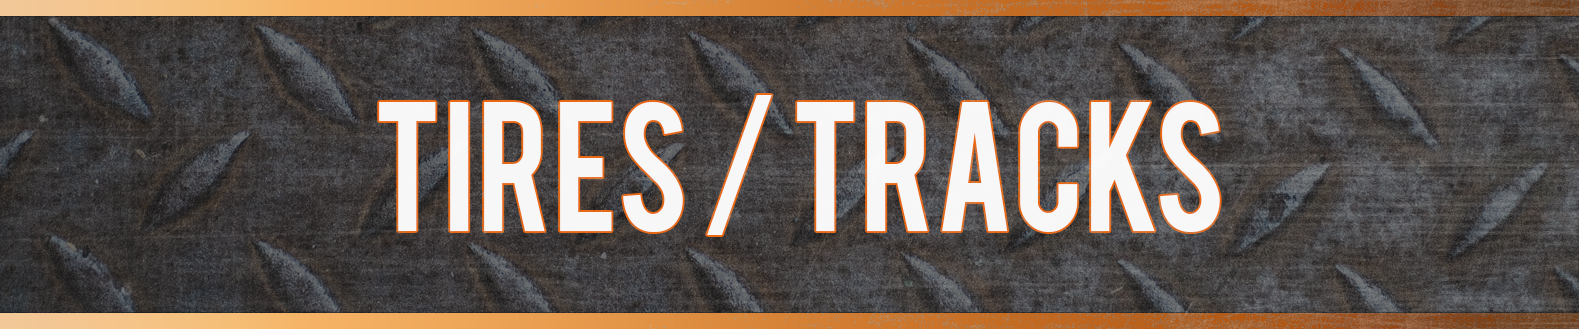 skid steer tires, Replacement Tracks, and over the tire tracks